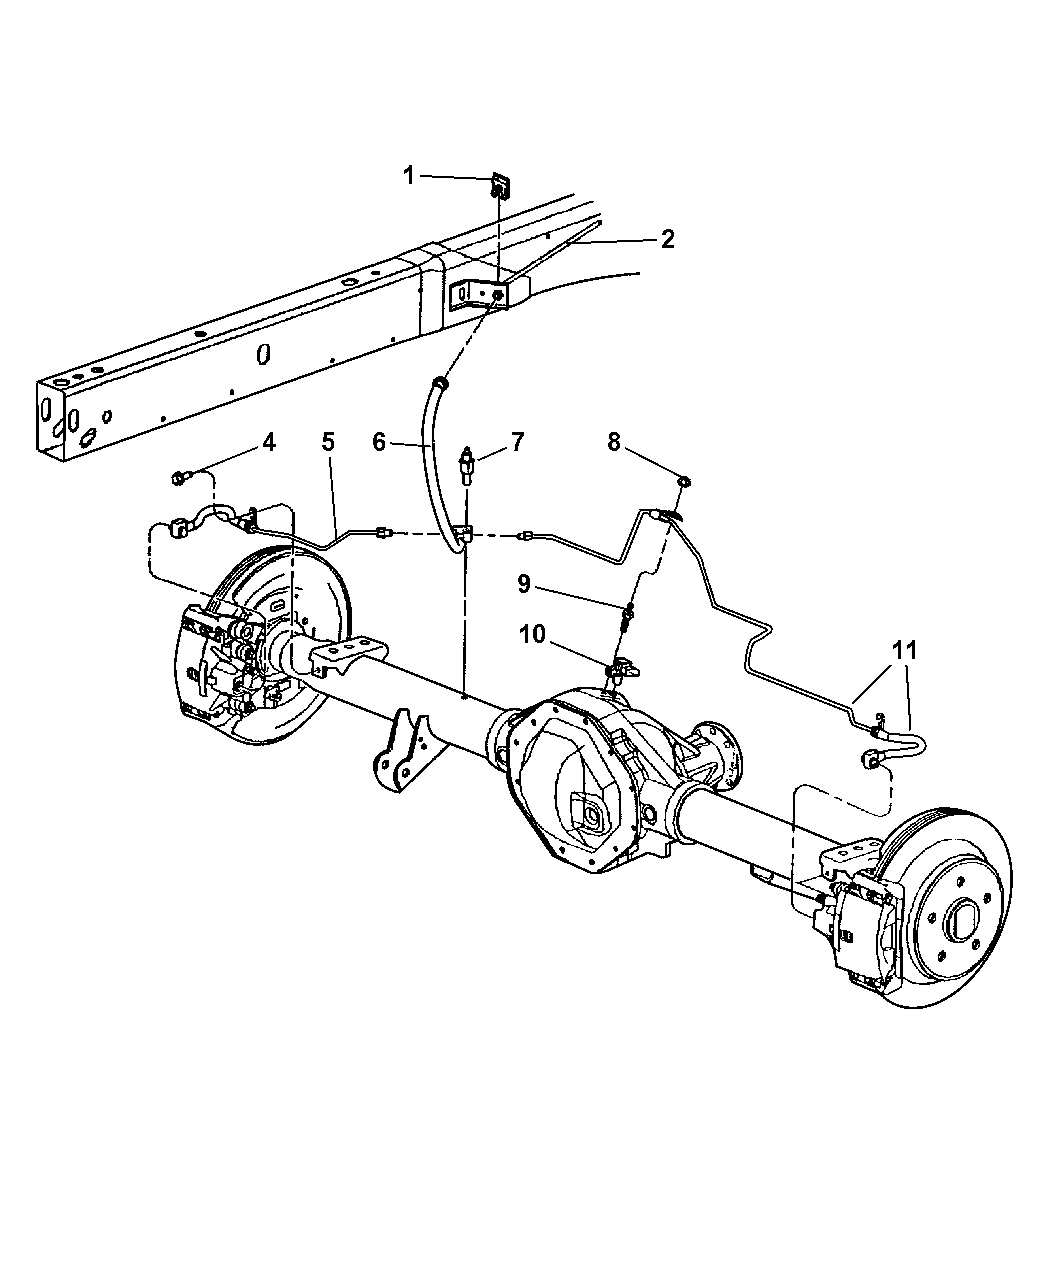 Dodge Dakota Brake System Diagram : Dodge ram lines hoses brake rear